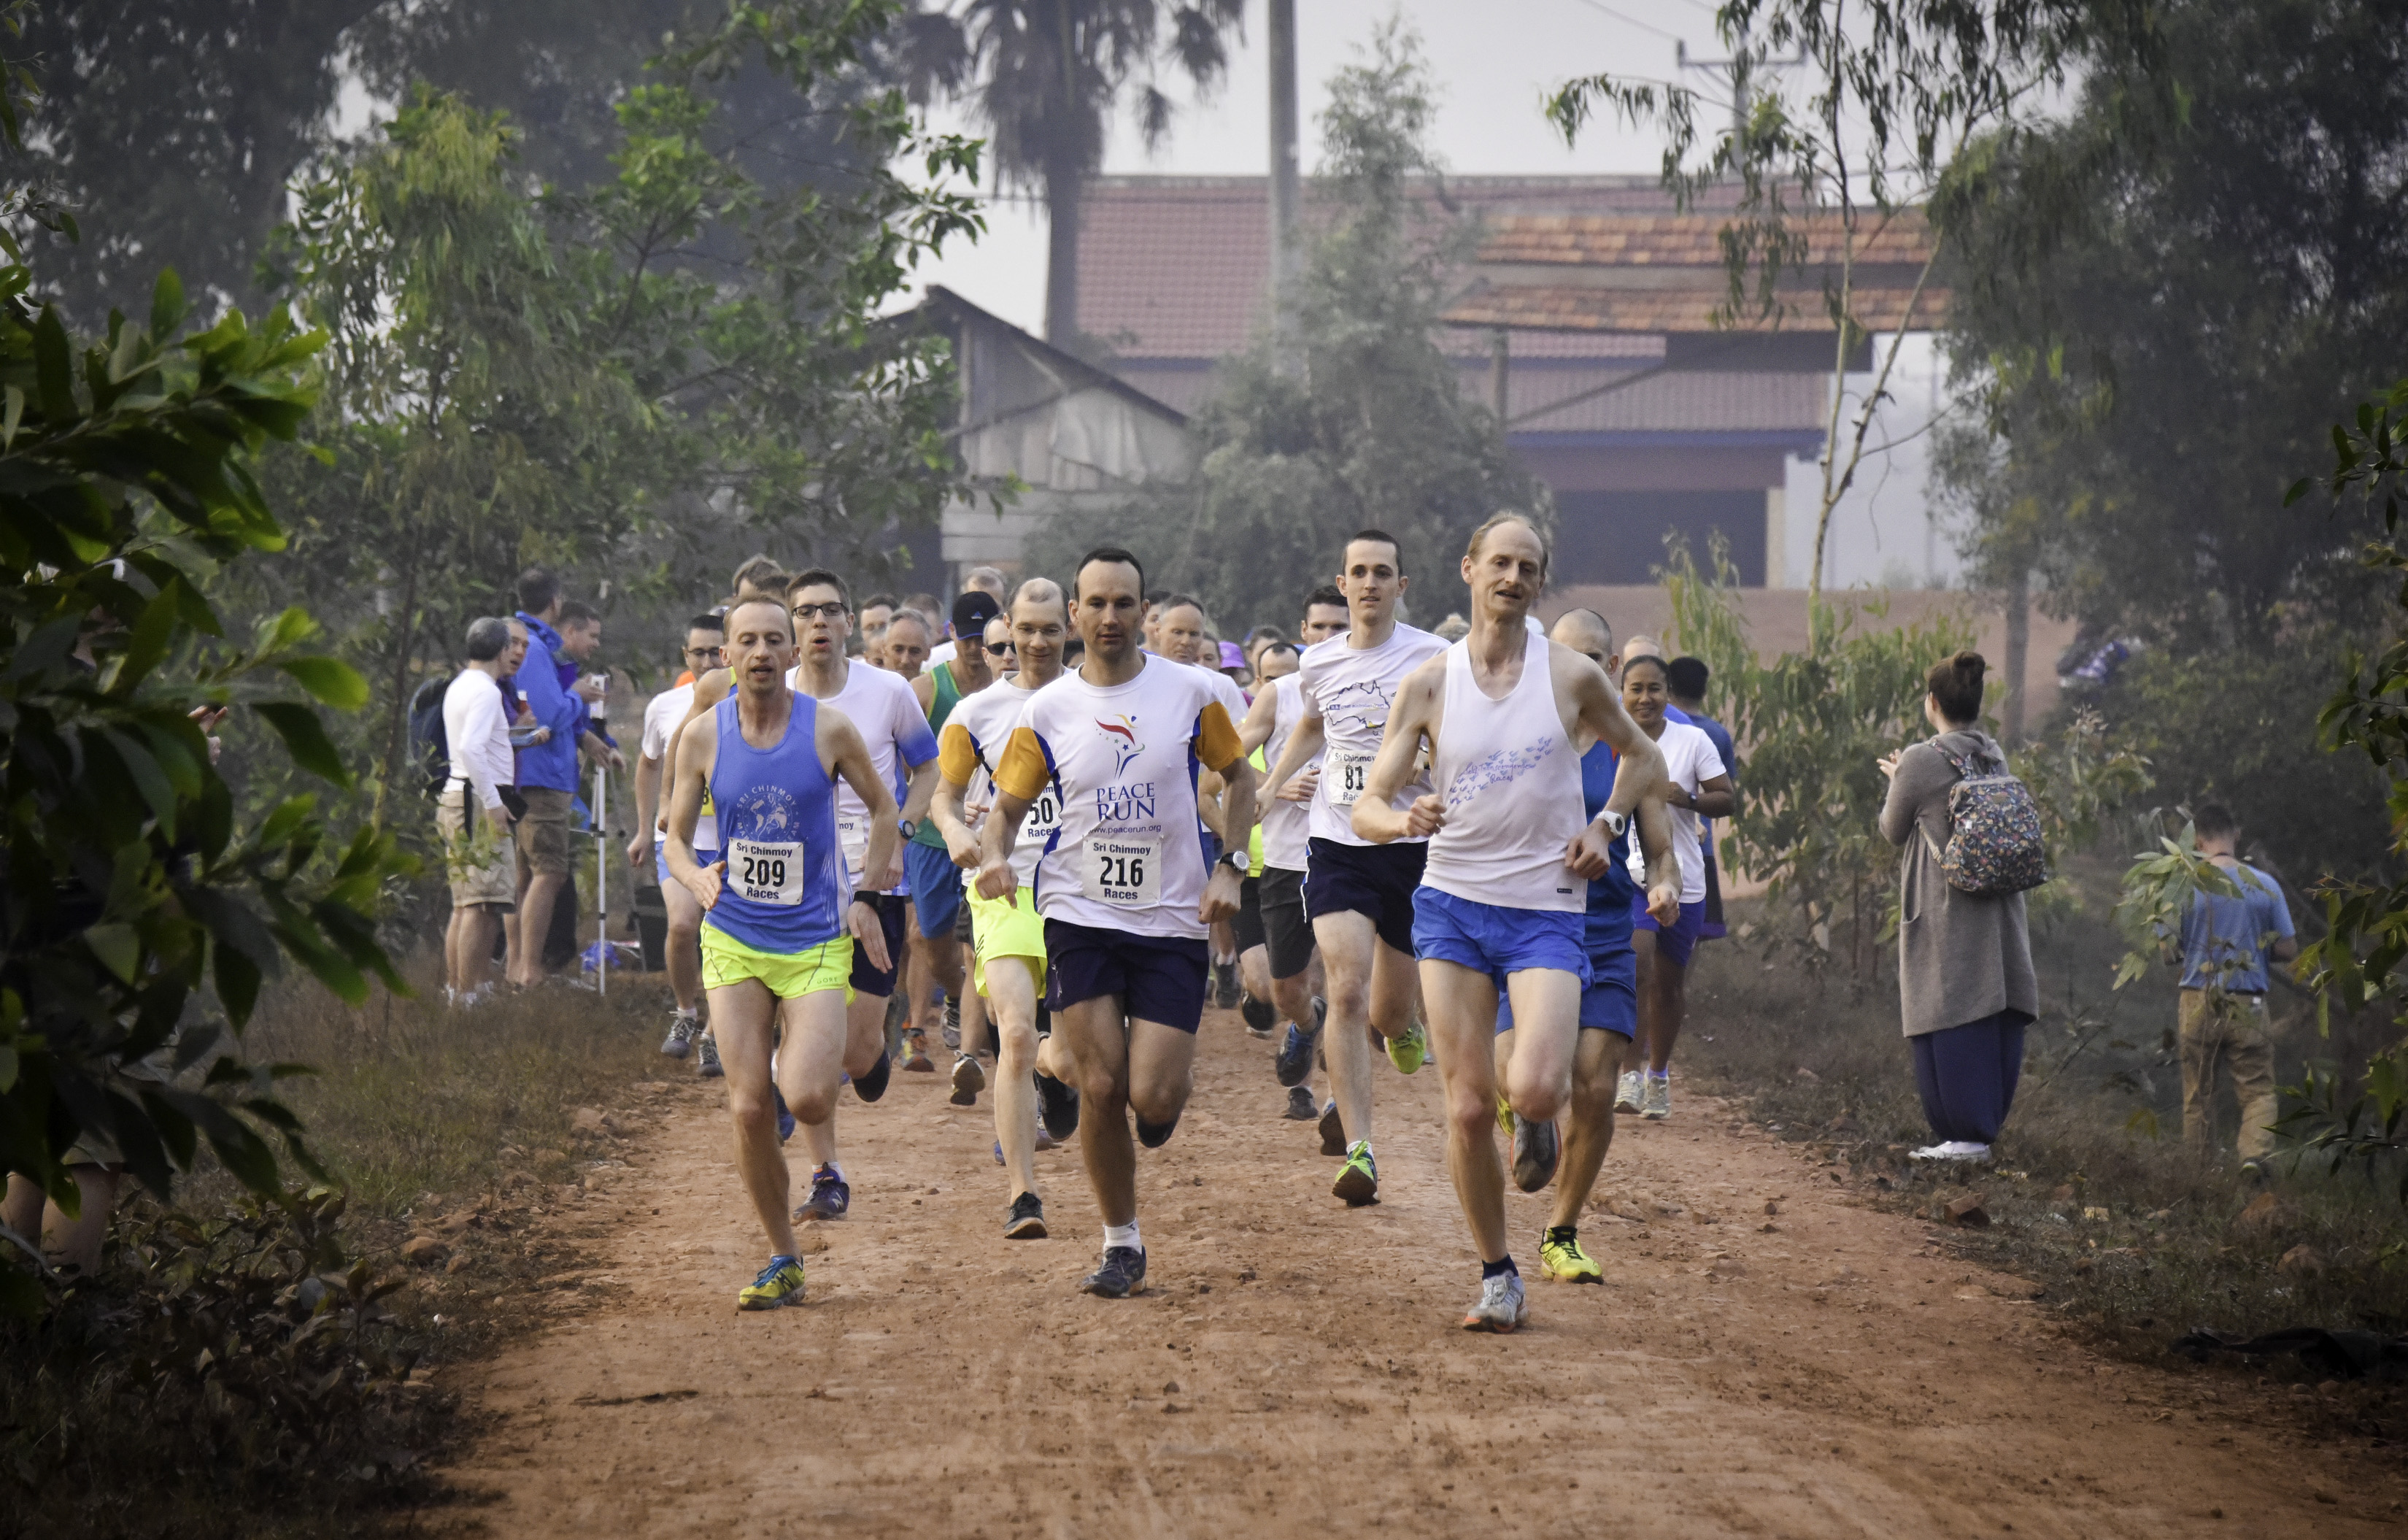 The Sri Chinmoy 2 Mile Grand Prix